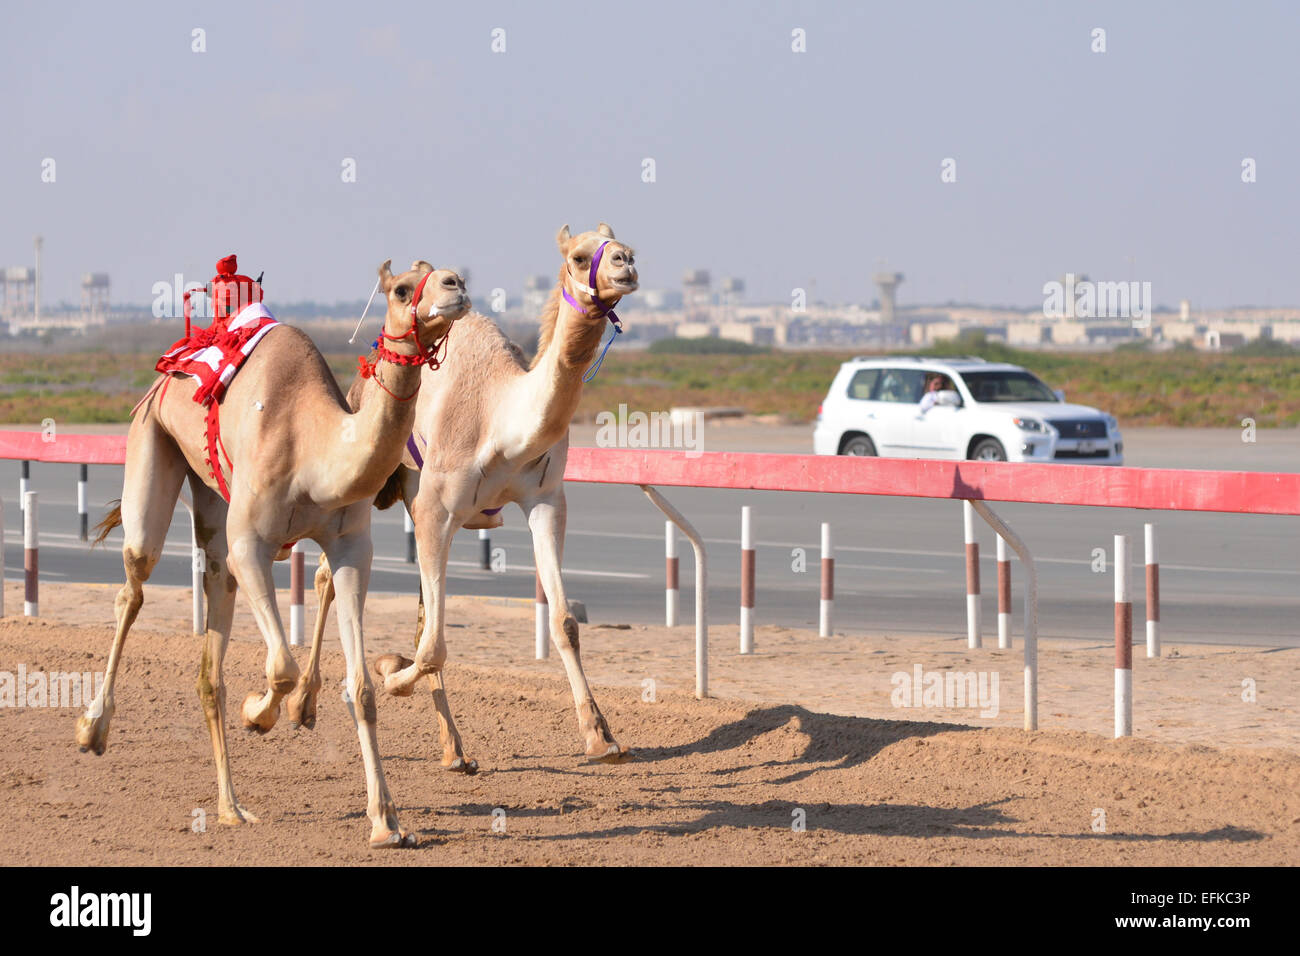 Camels racing on a desert track in Abu Dhabi.  The robot jockeys are controlled from the human jockey in the chase - Stock Image